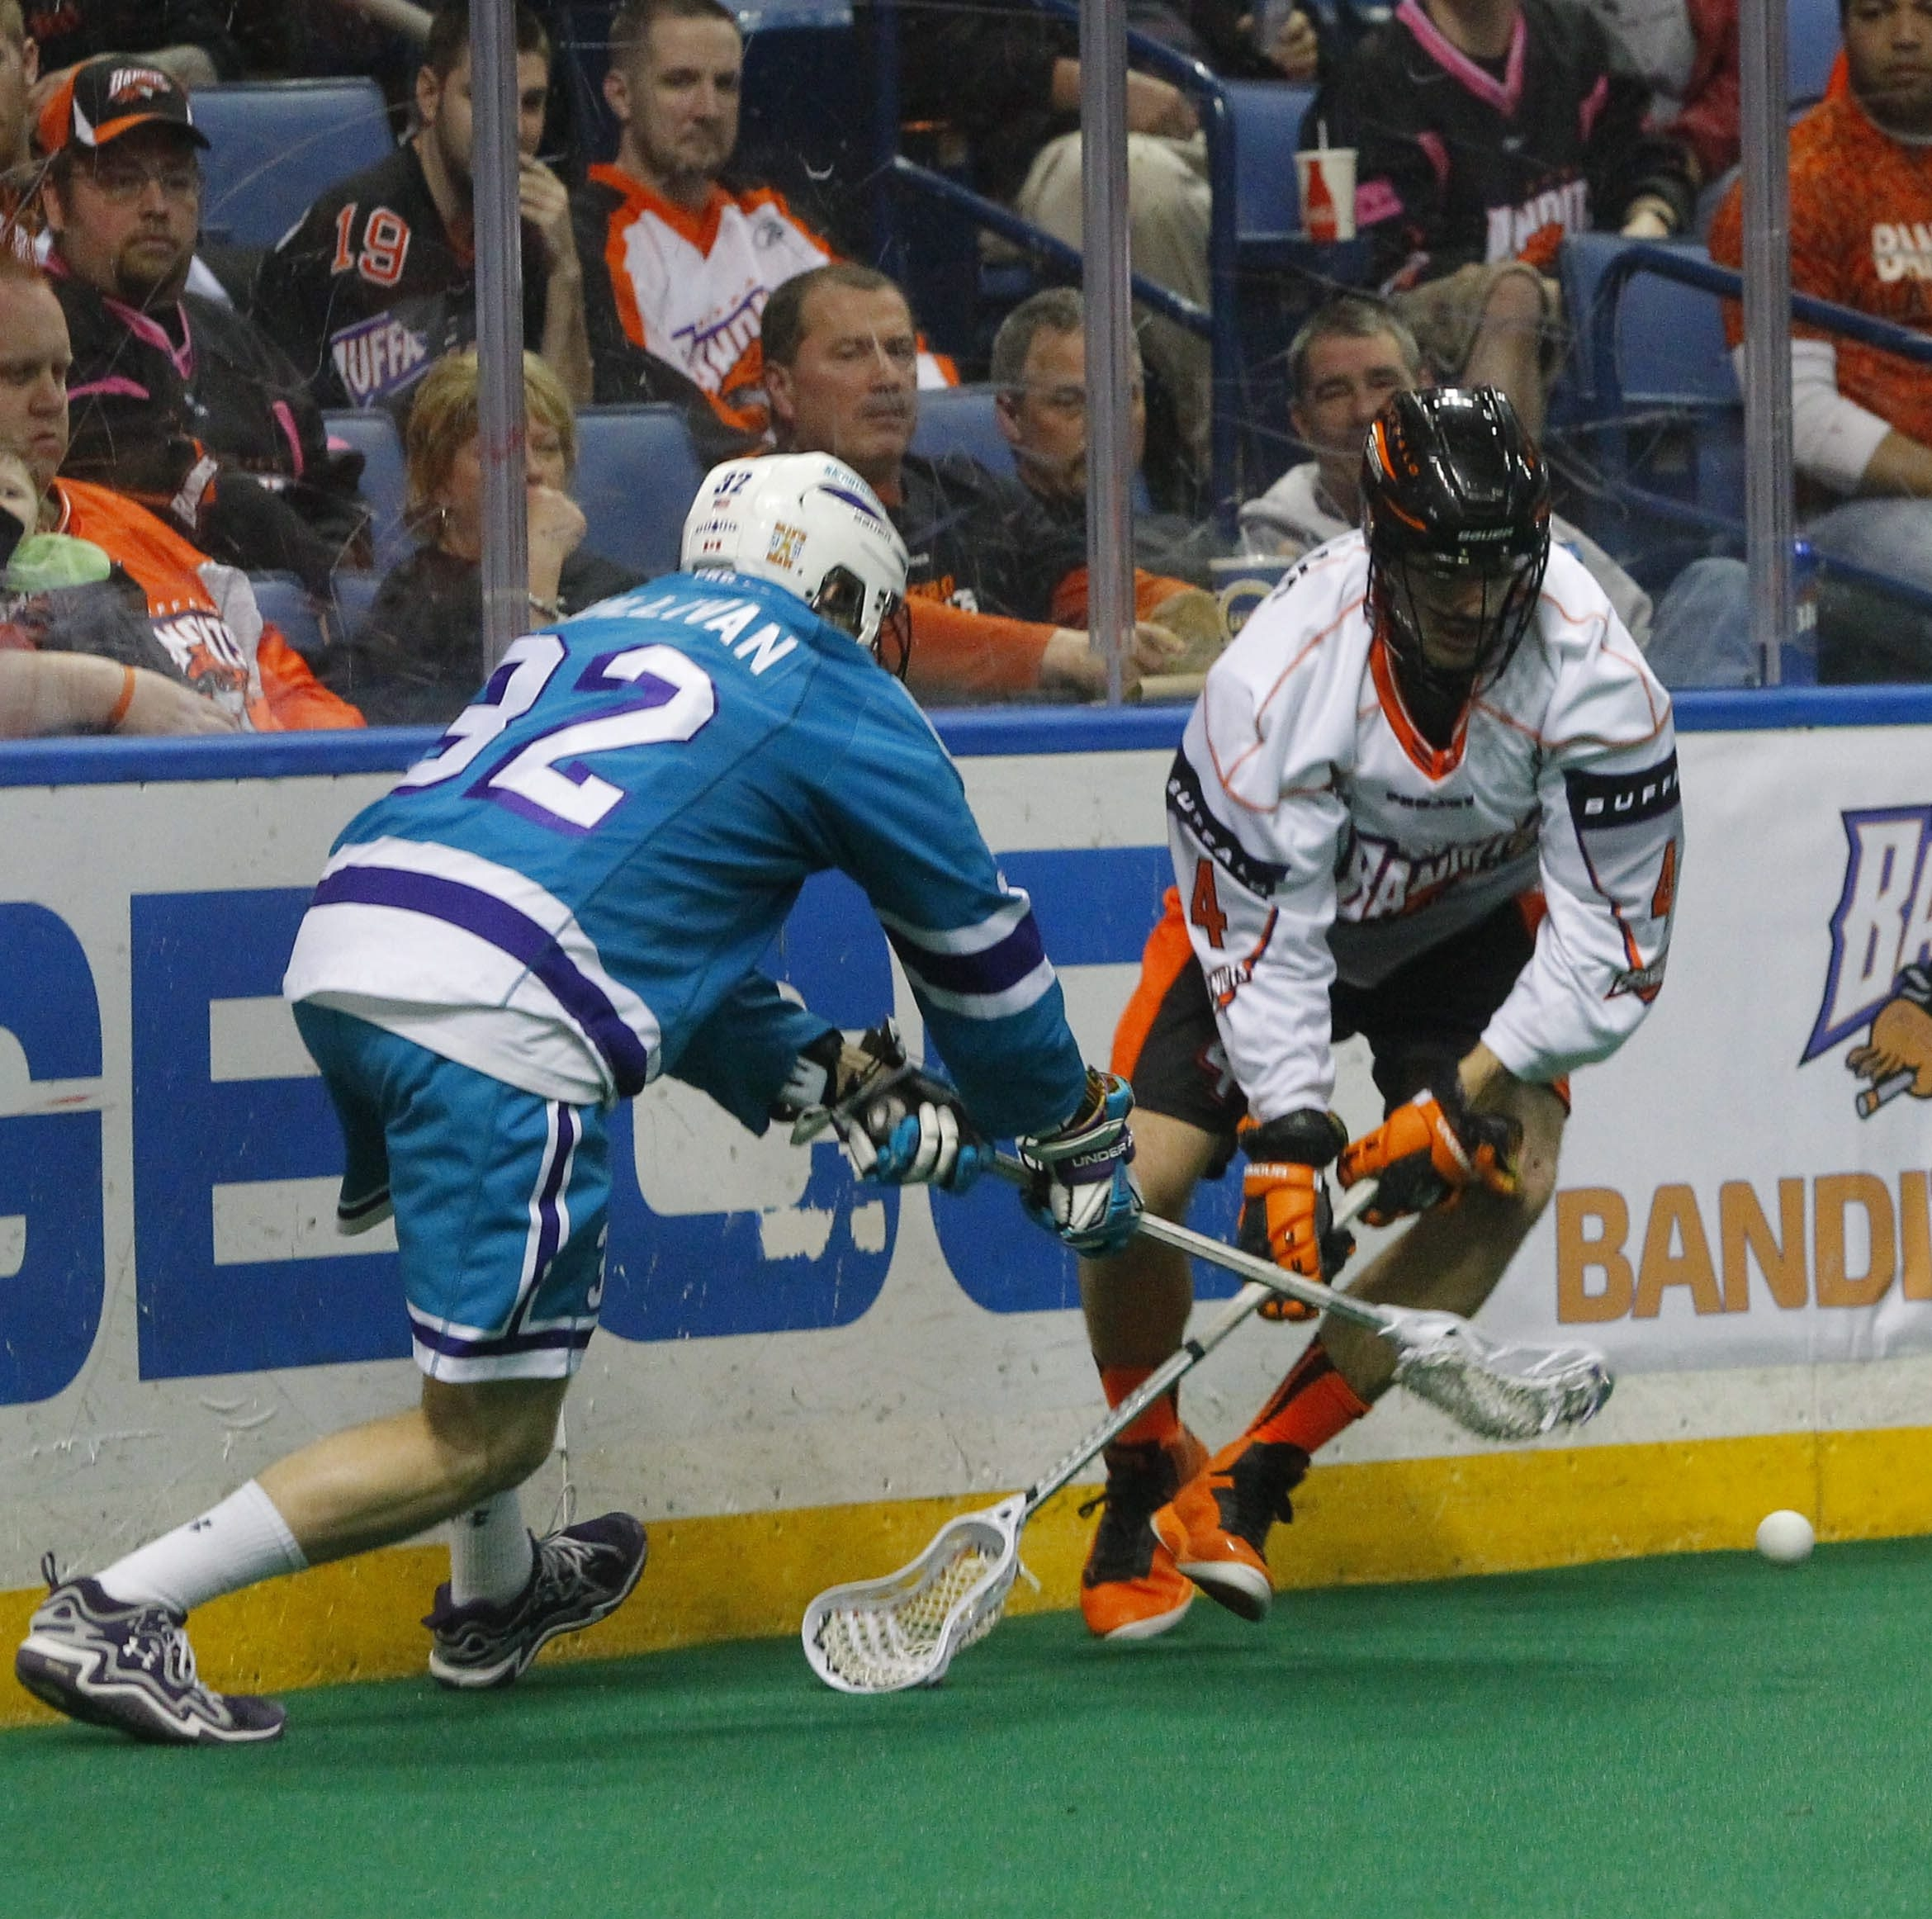 Bandits' Joel Matthews (4) and Knighthawks' Jon Sullivan (32) go for the ball in the regular-season finale at First Niagara Center Saturday.